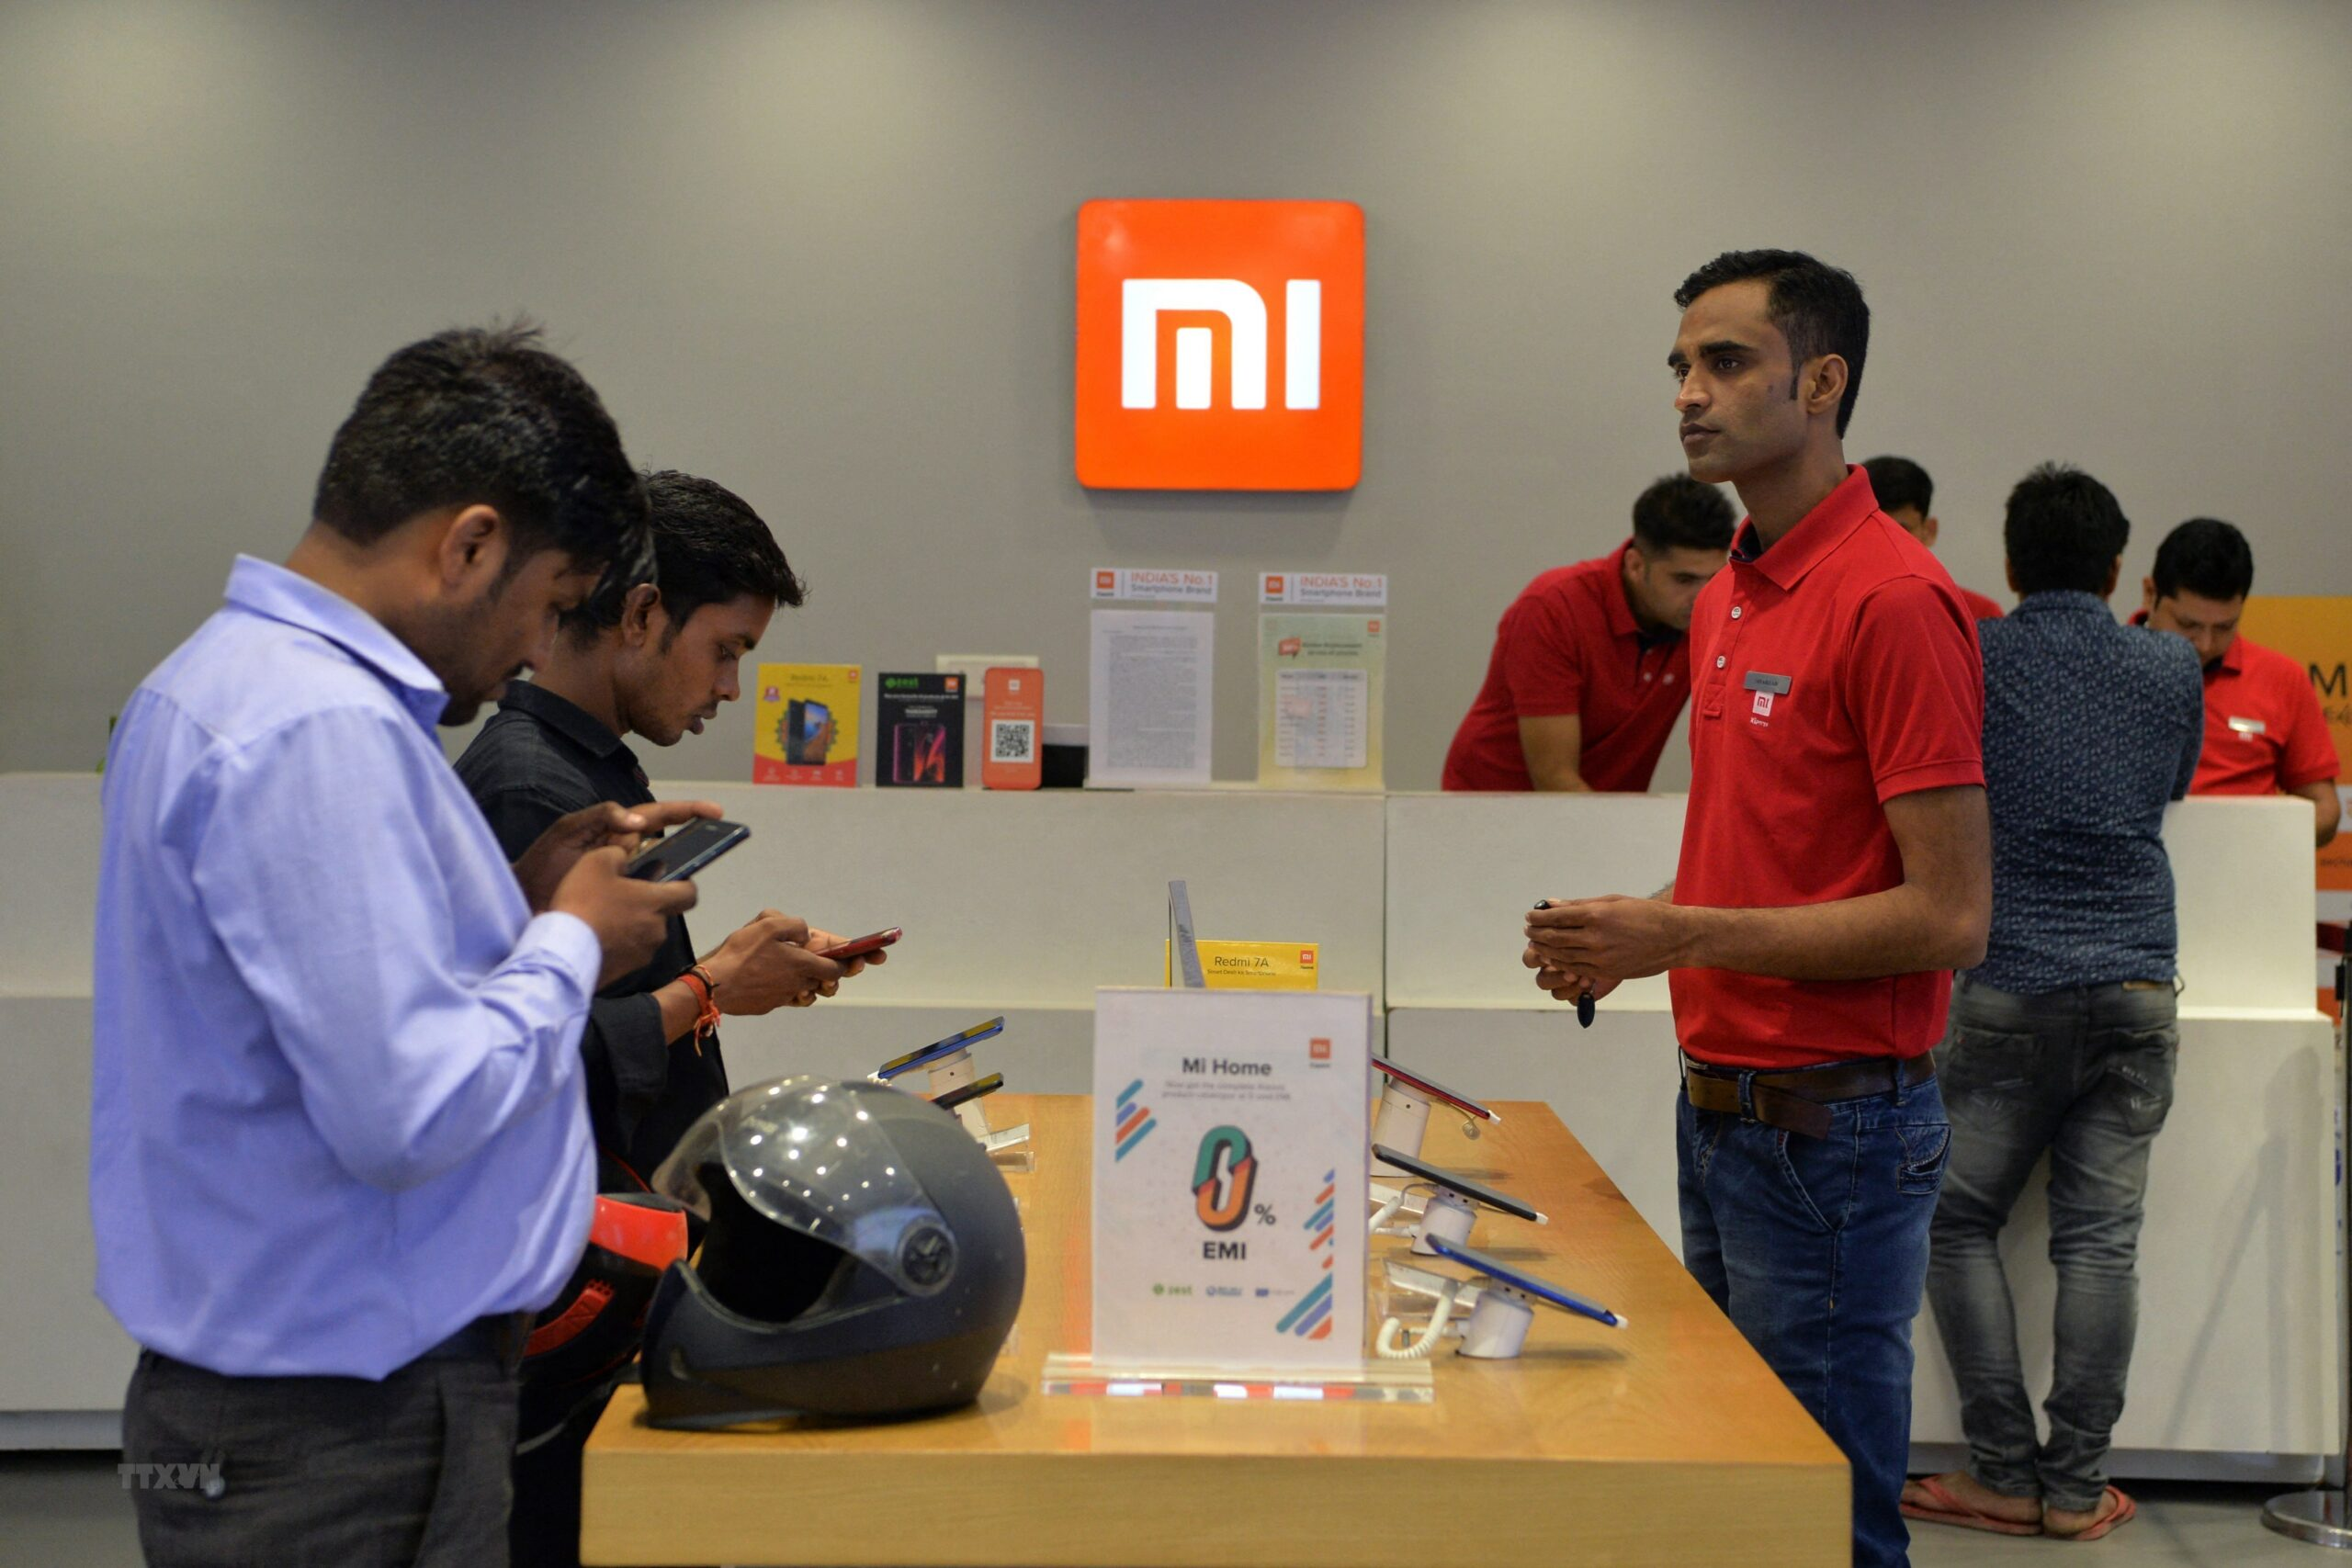 Customers inspect smartphones made by Xiaomi at a Mi store in Gurgaon